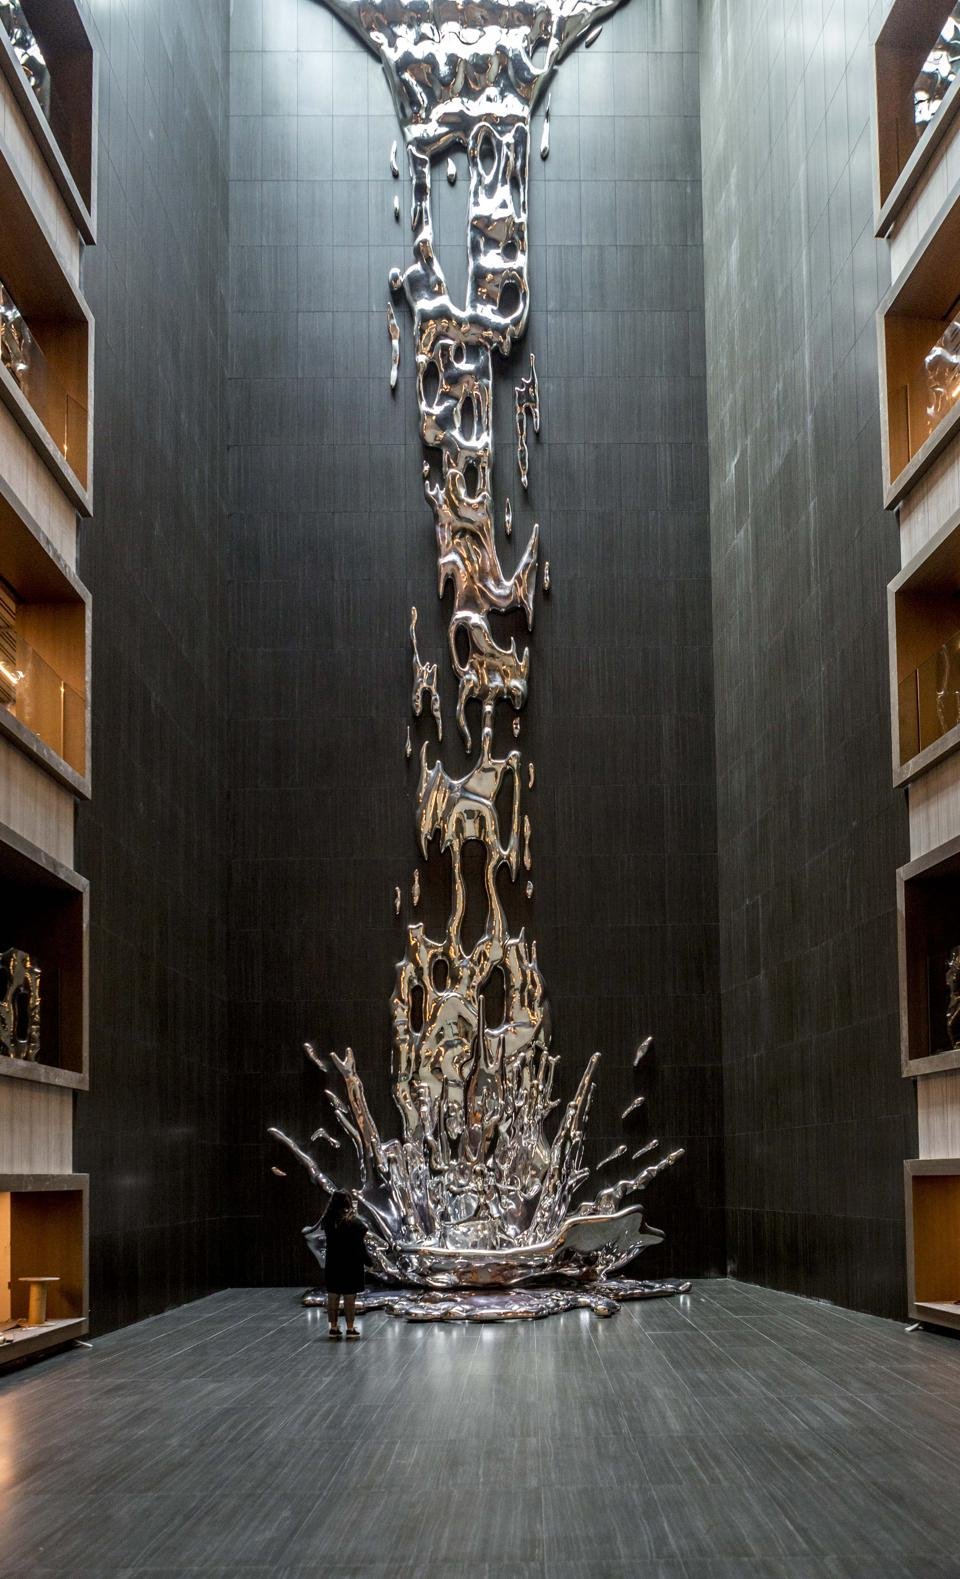 The Great Waterfall sculpture at the VP Plaza España Design hotel.